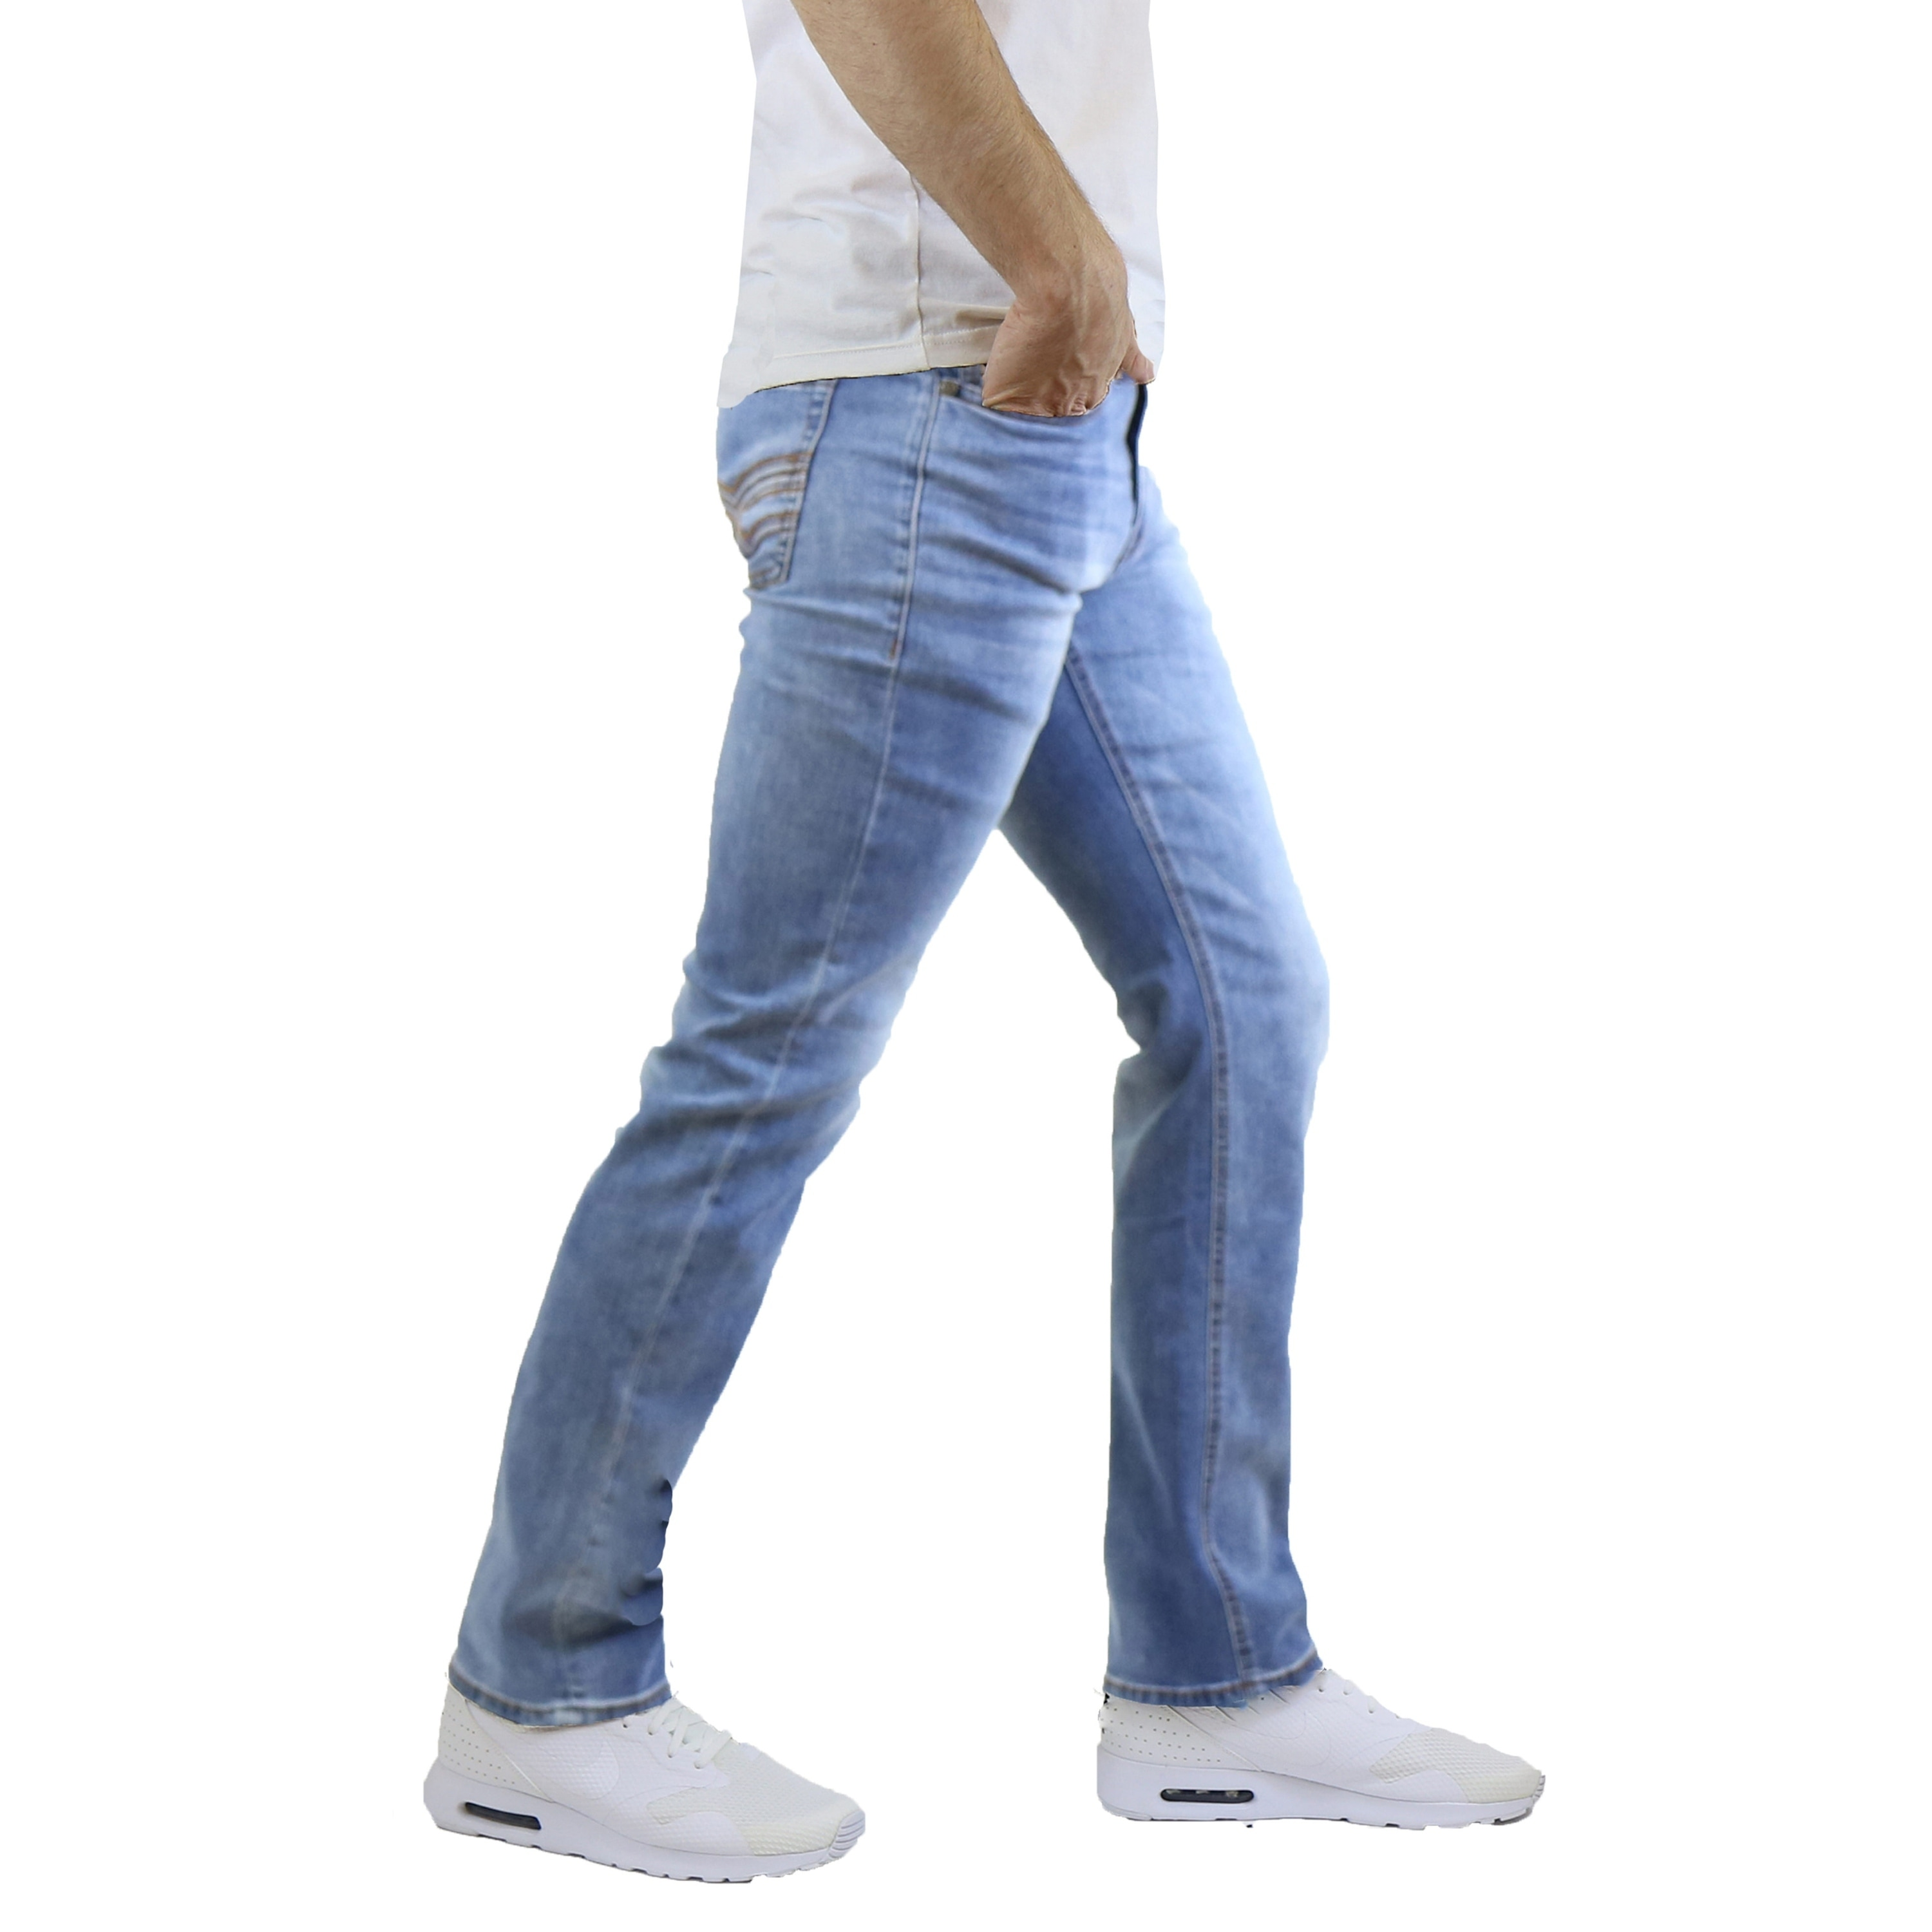 24f0dd0566 Shop Native Jeans Men s Washed Slim Fit Stretched Jeans Straight Leg - On  Sale - Free Shipping On Orders Over  45 - Overstock - 19225929